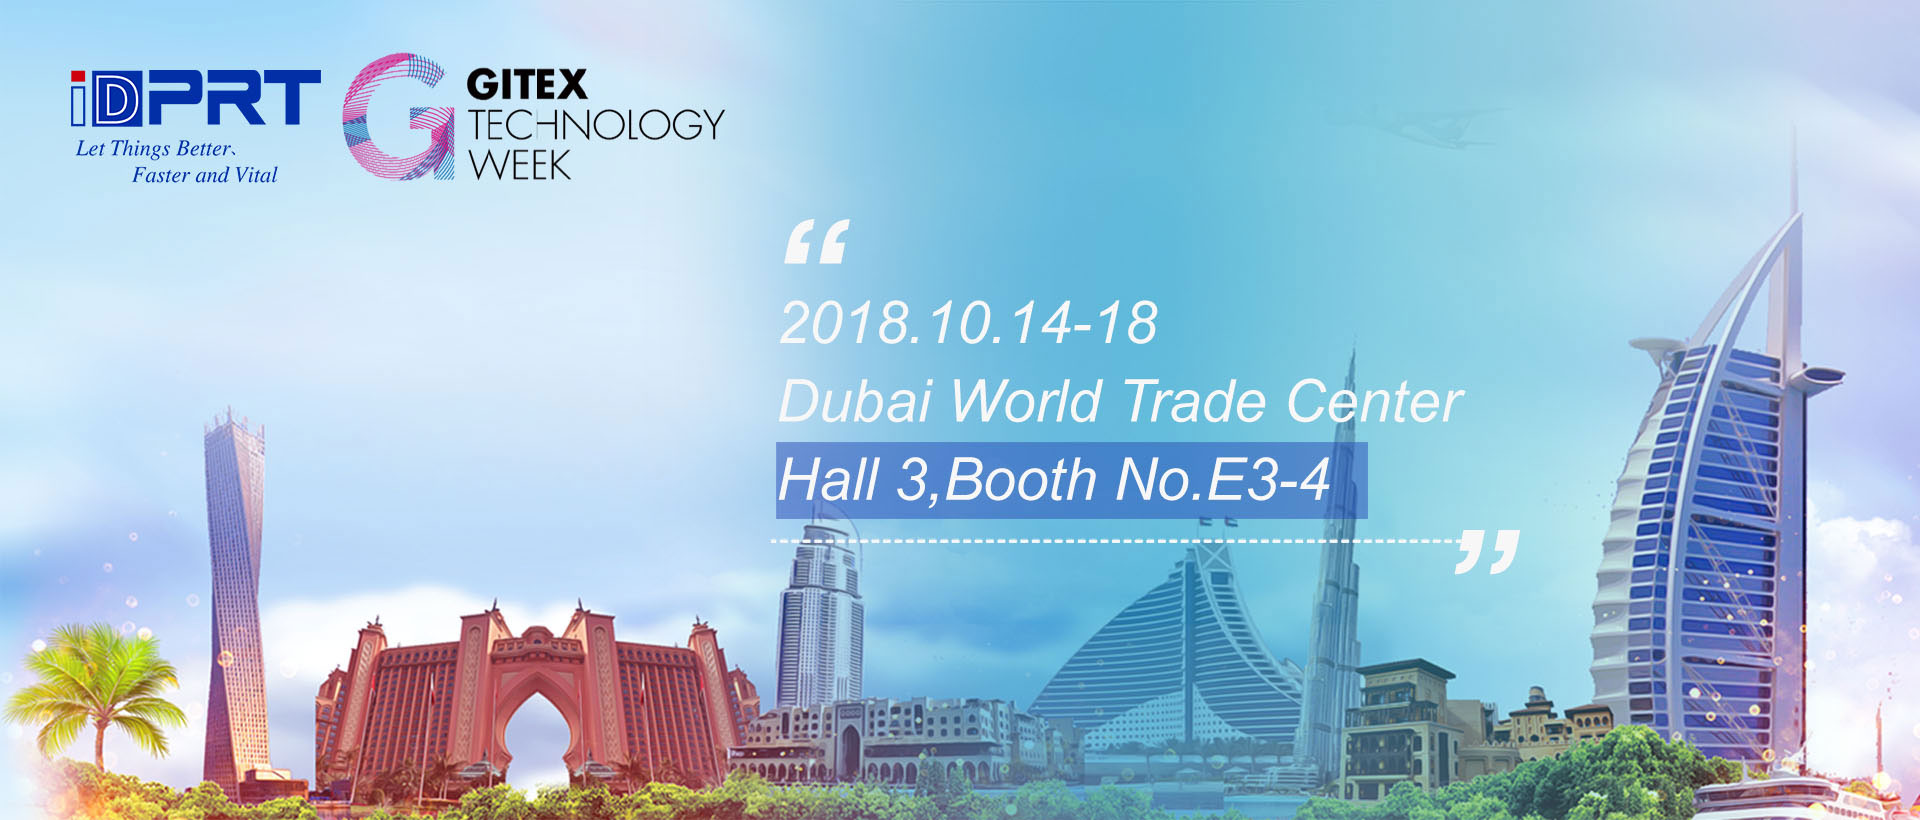 2018, iDPRT is waiting for you in Dubai GITEX